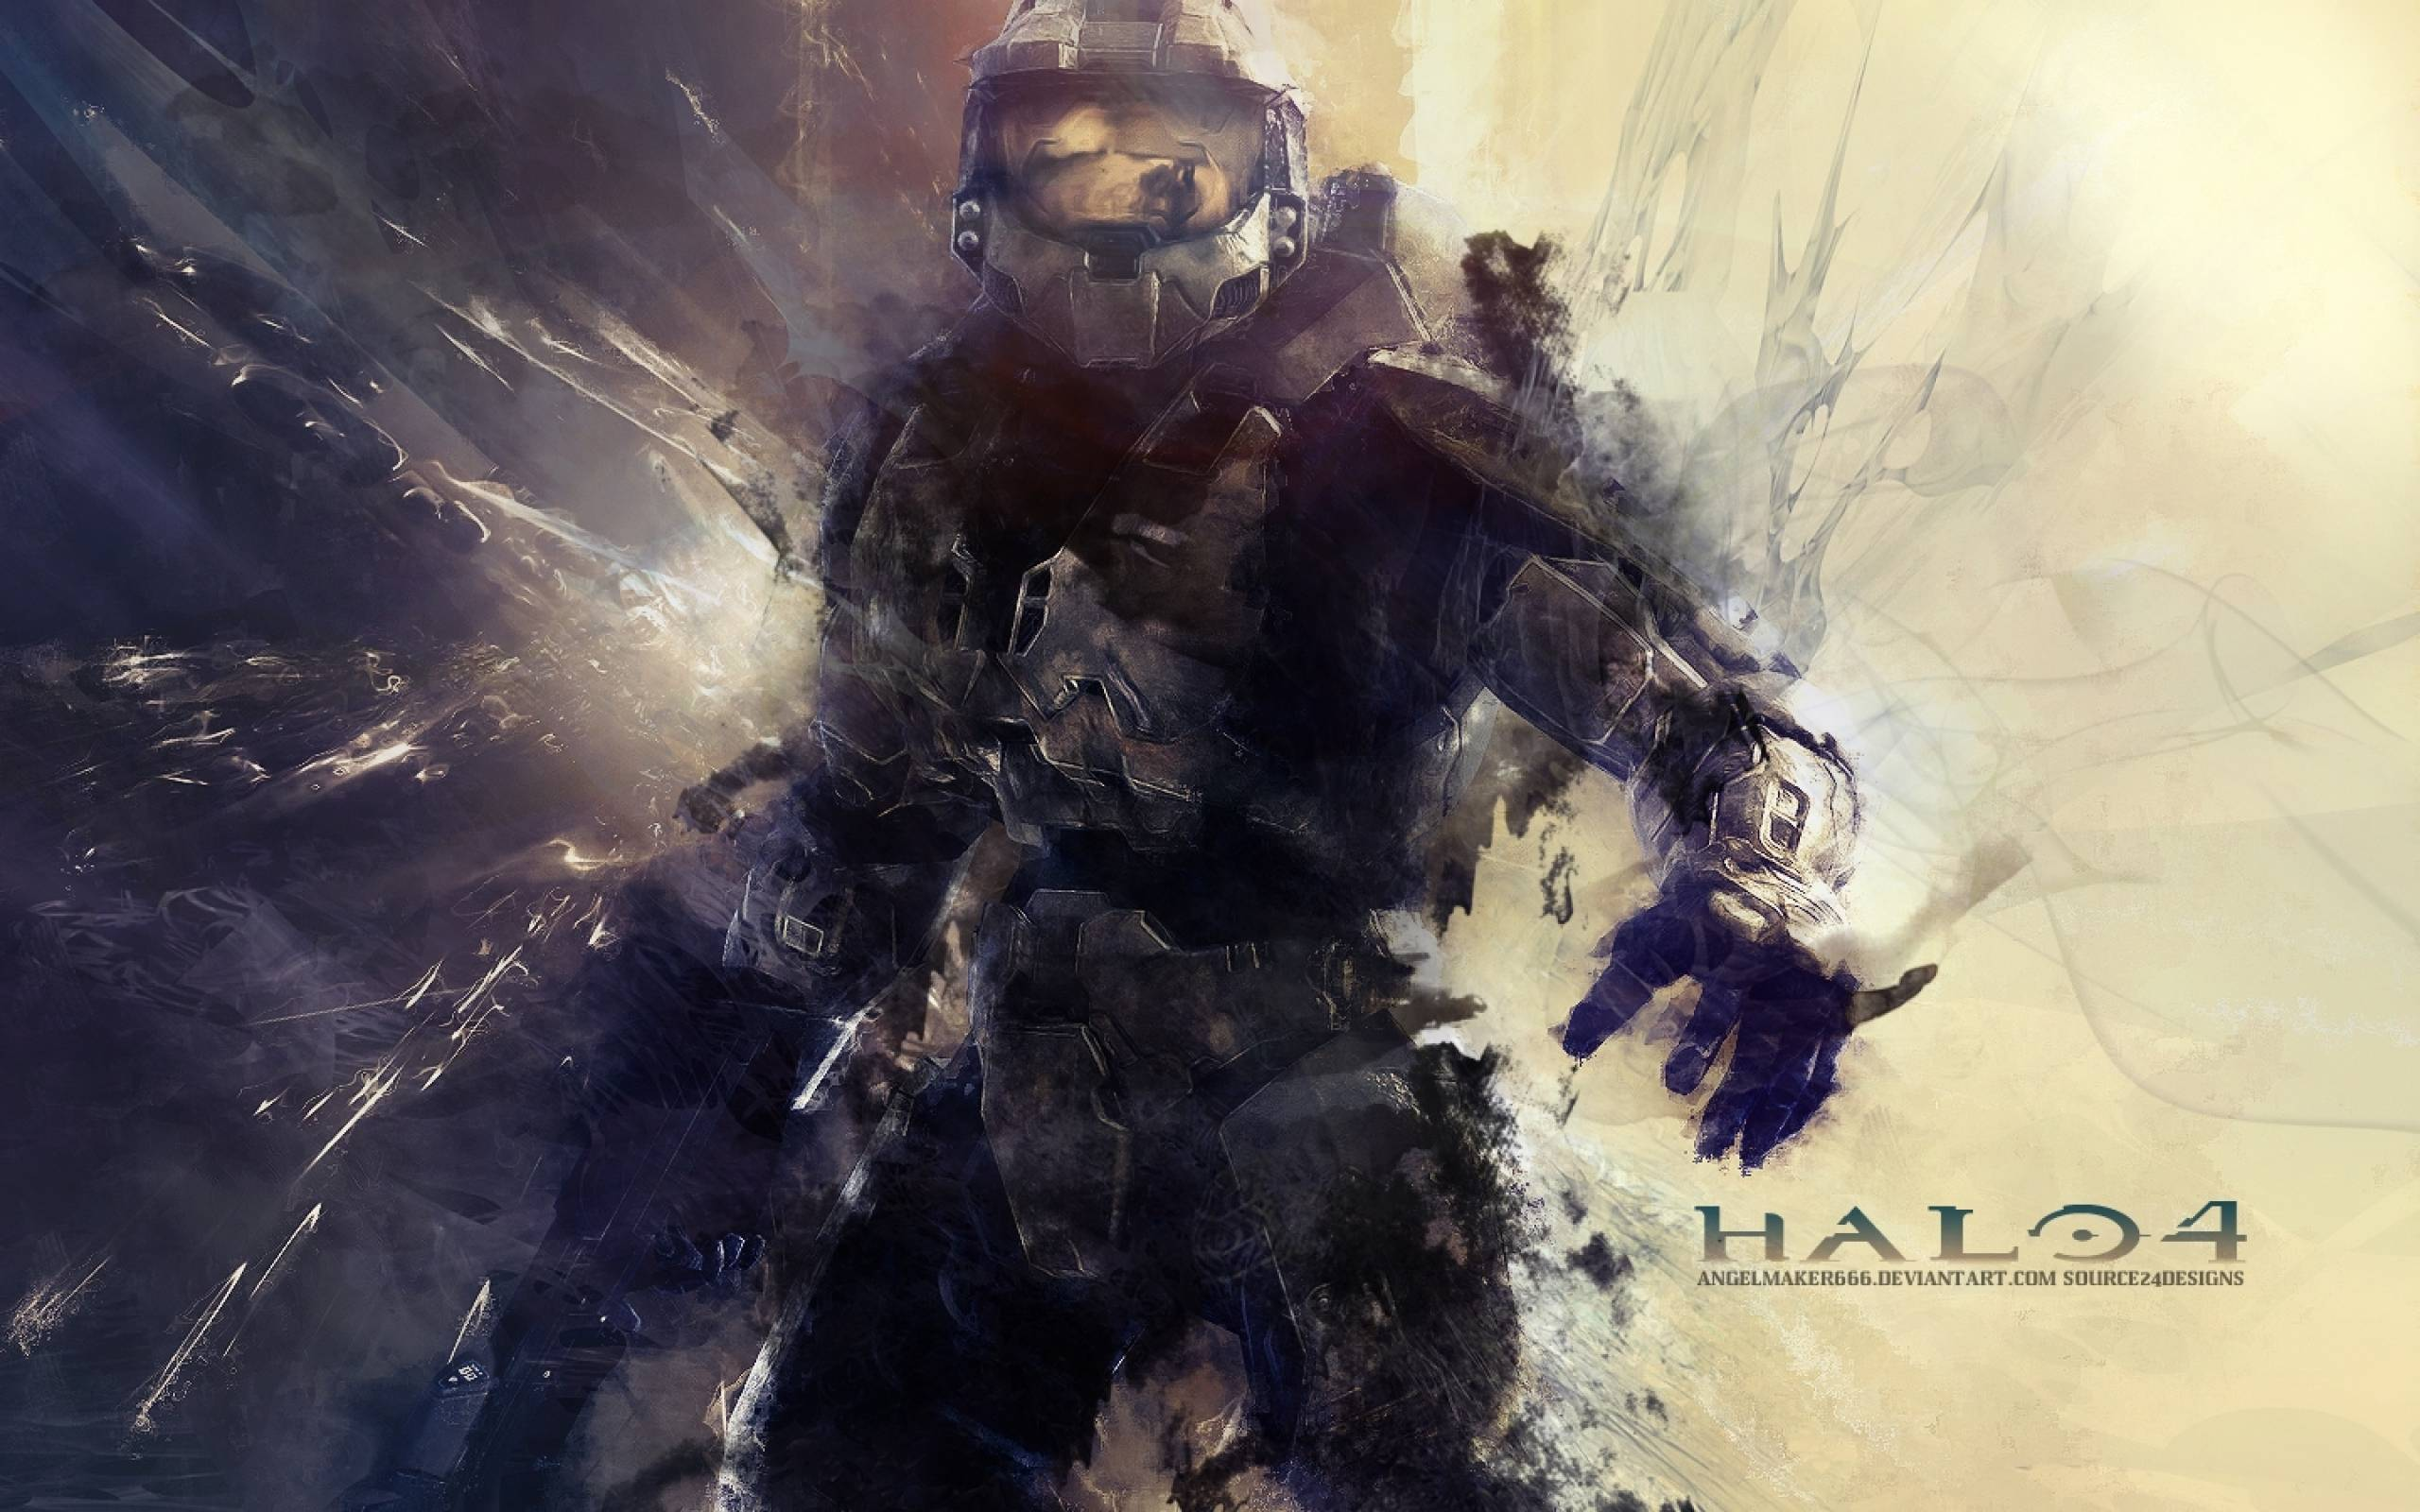 HD Halo Wallpapers 2560x1600